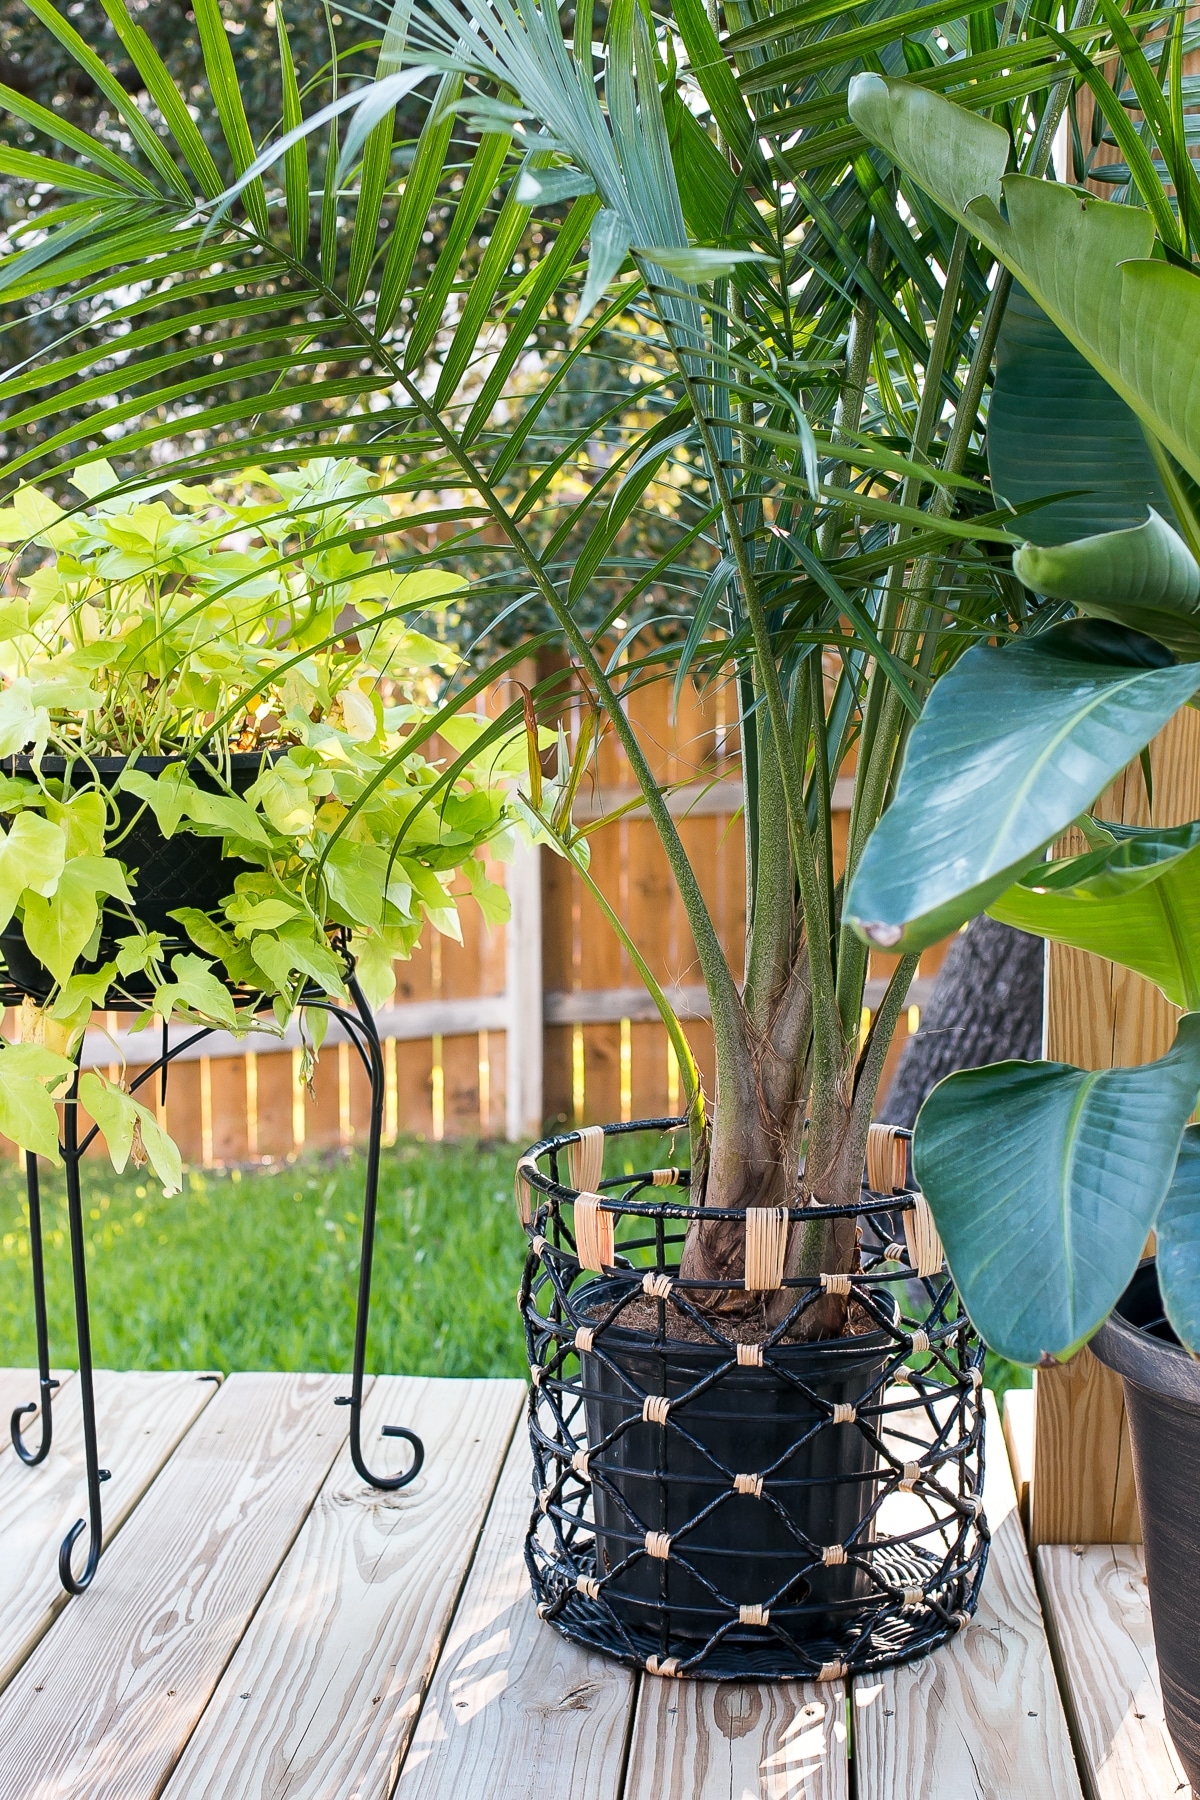 How To Build A Diy Pergola With Simpson Strong Tie Outdoor